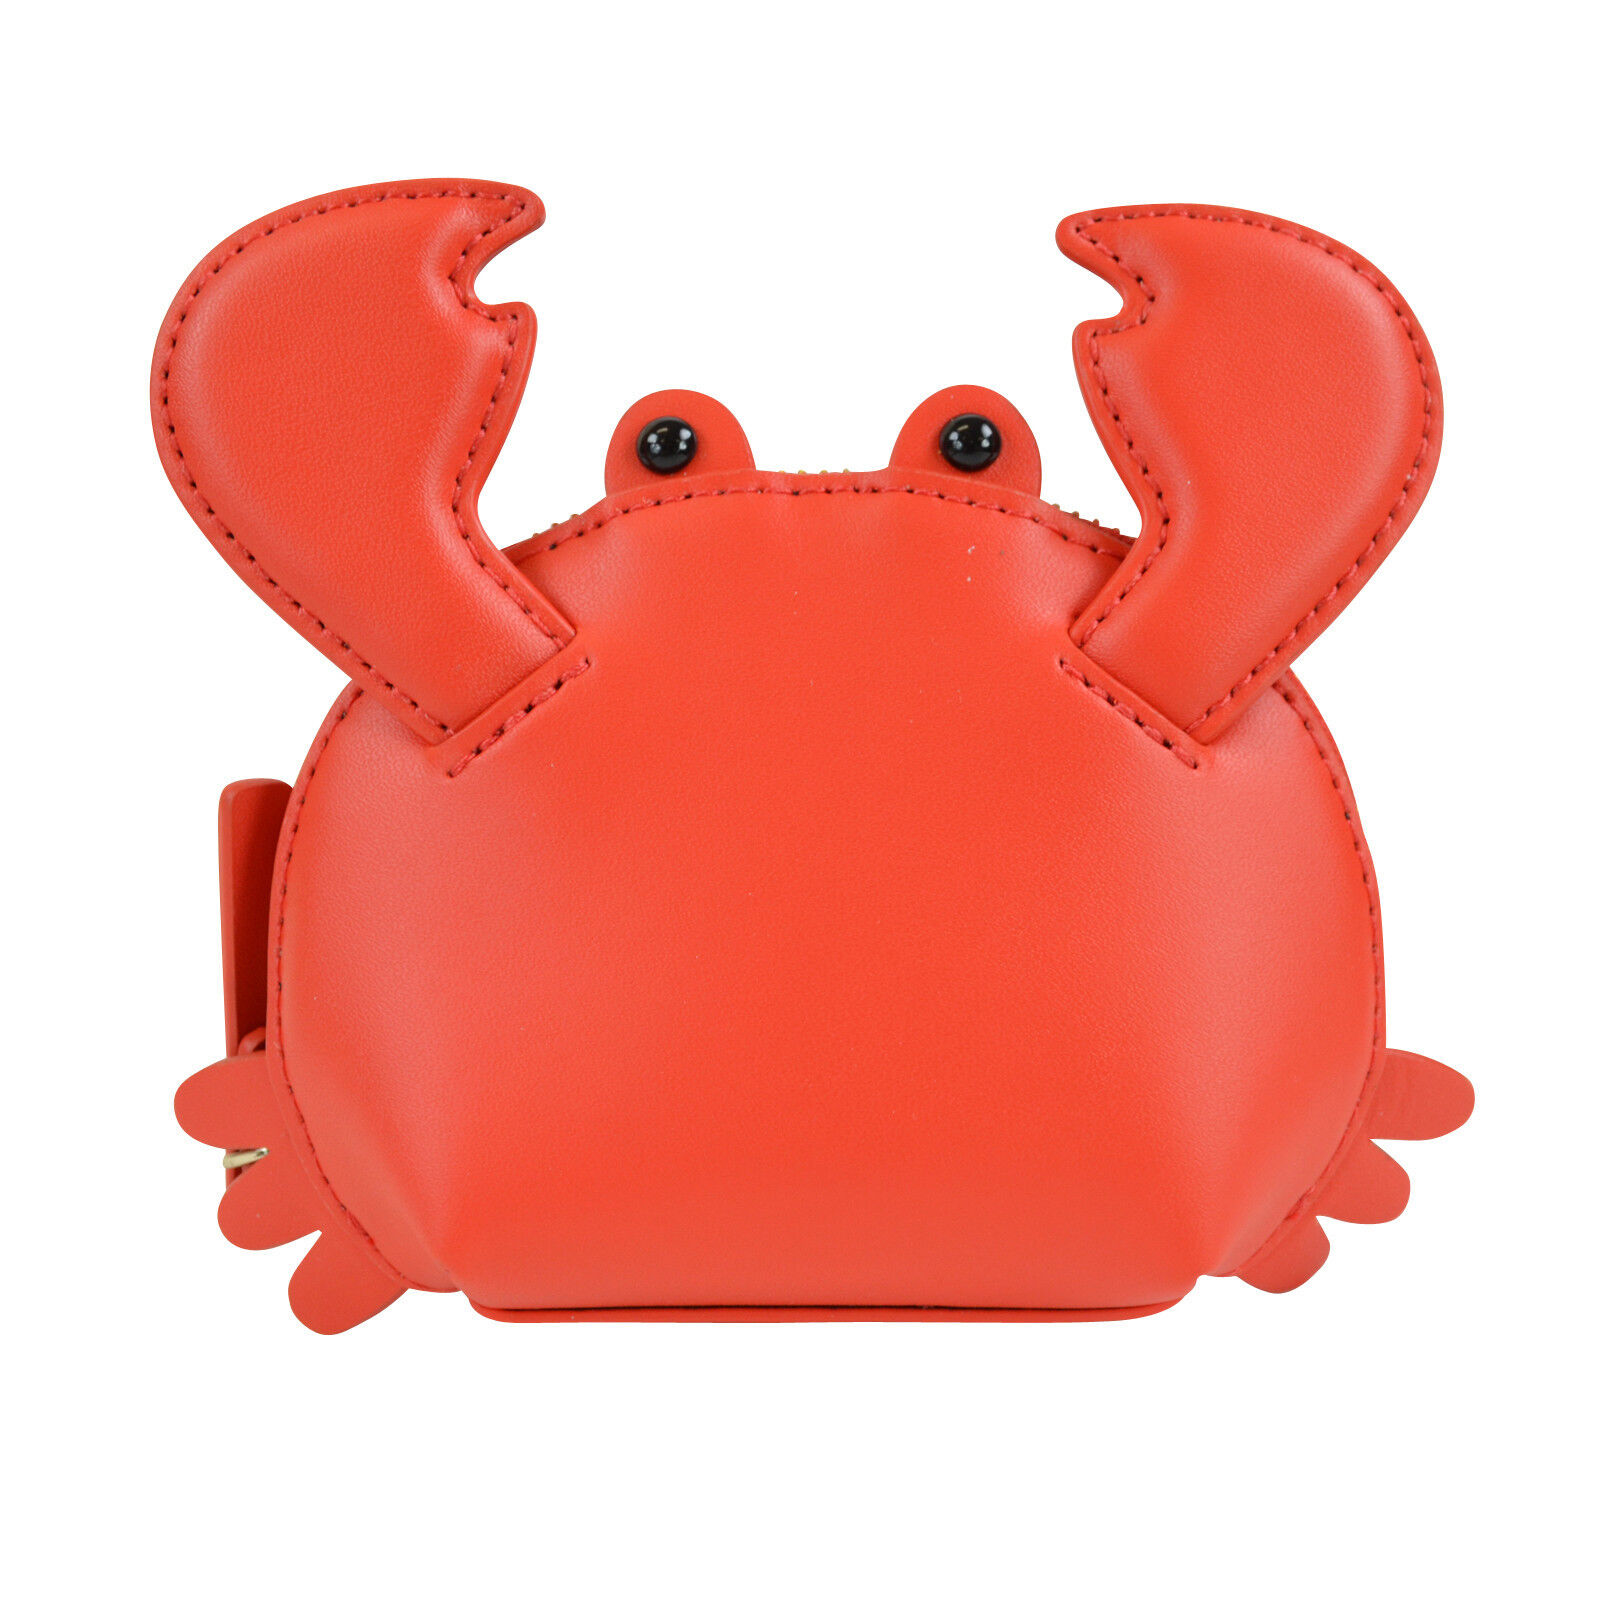 100% authentic d8acf feb78 Details about NWT Kate Spade Shore Thing Crab Coin Case Wallet w Key Chain  Red